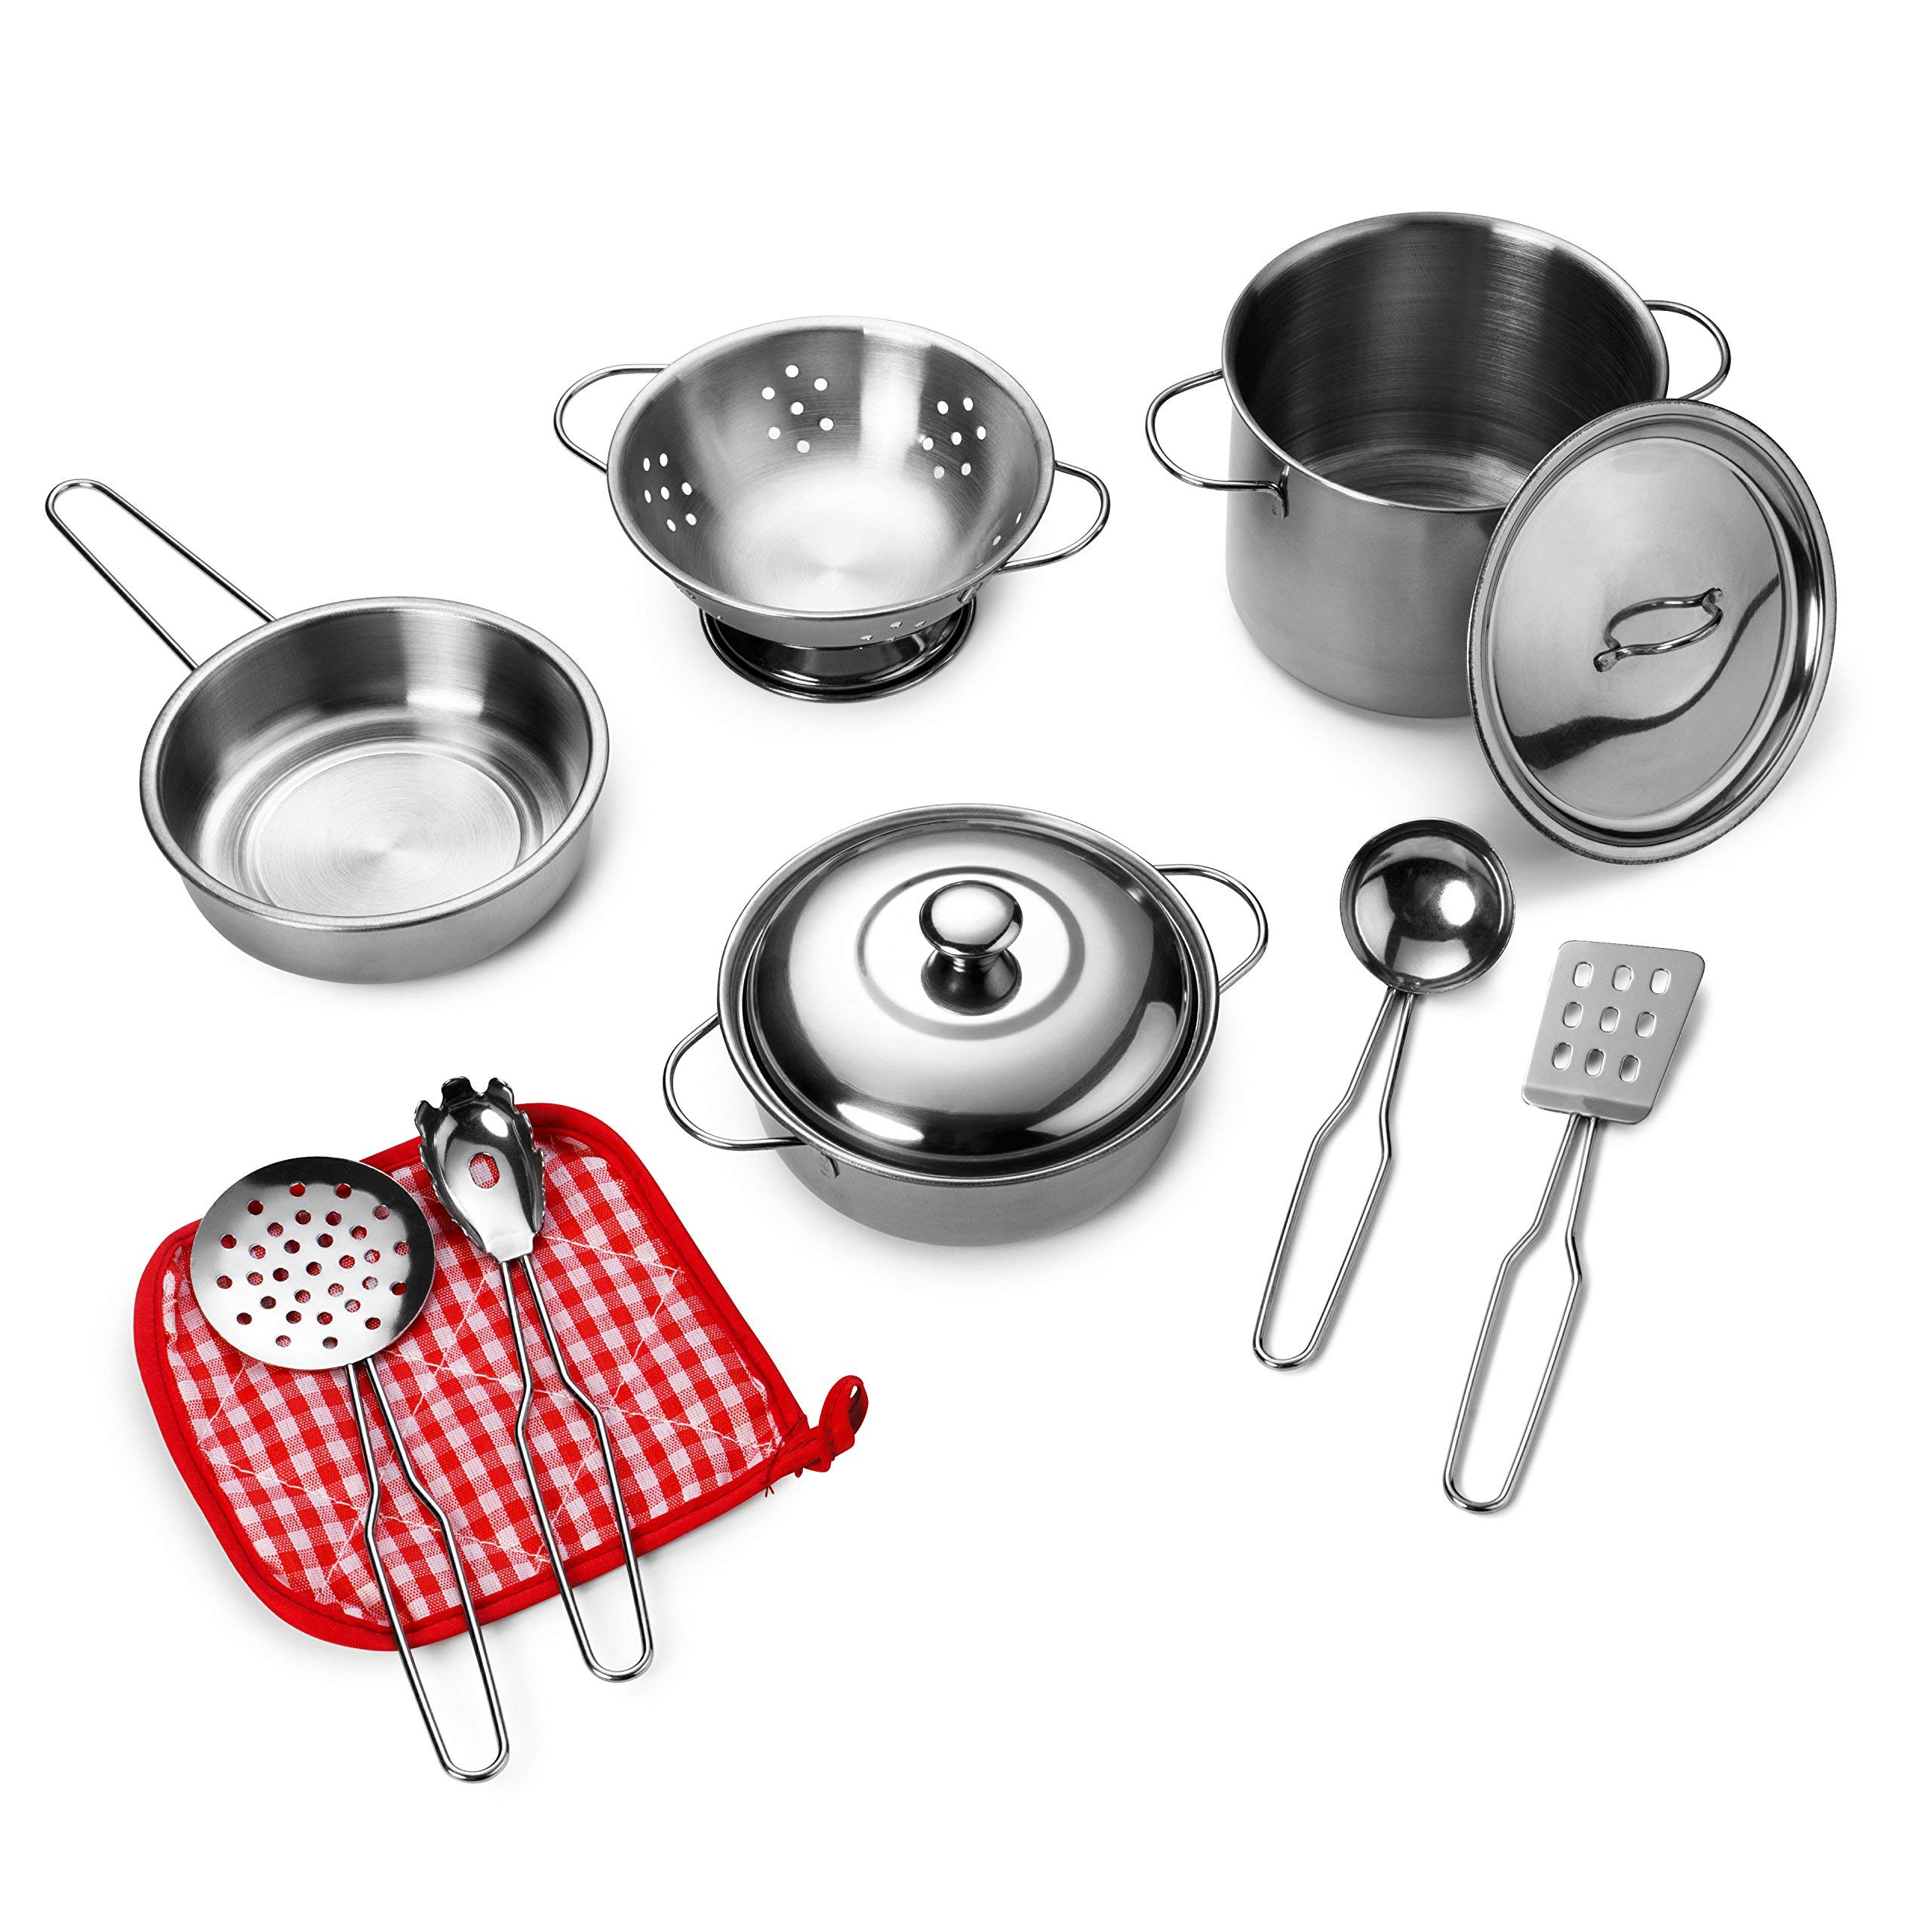 Playkidz: Super Durable 11 Piece Stainless Steel Pots and Pans Cookware Playset for kids Pretend Play House! by Playkidz